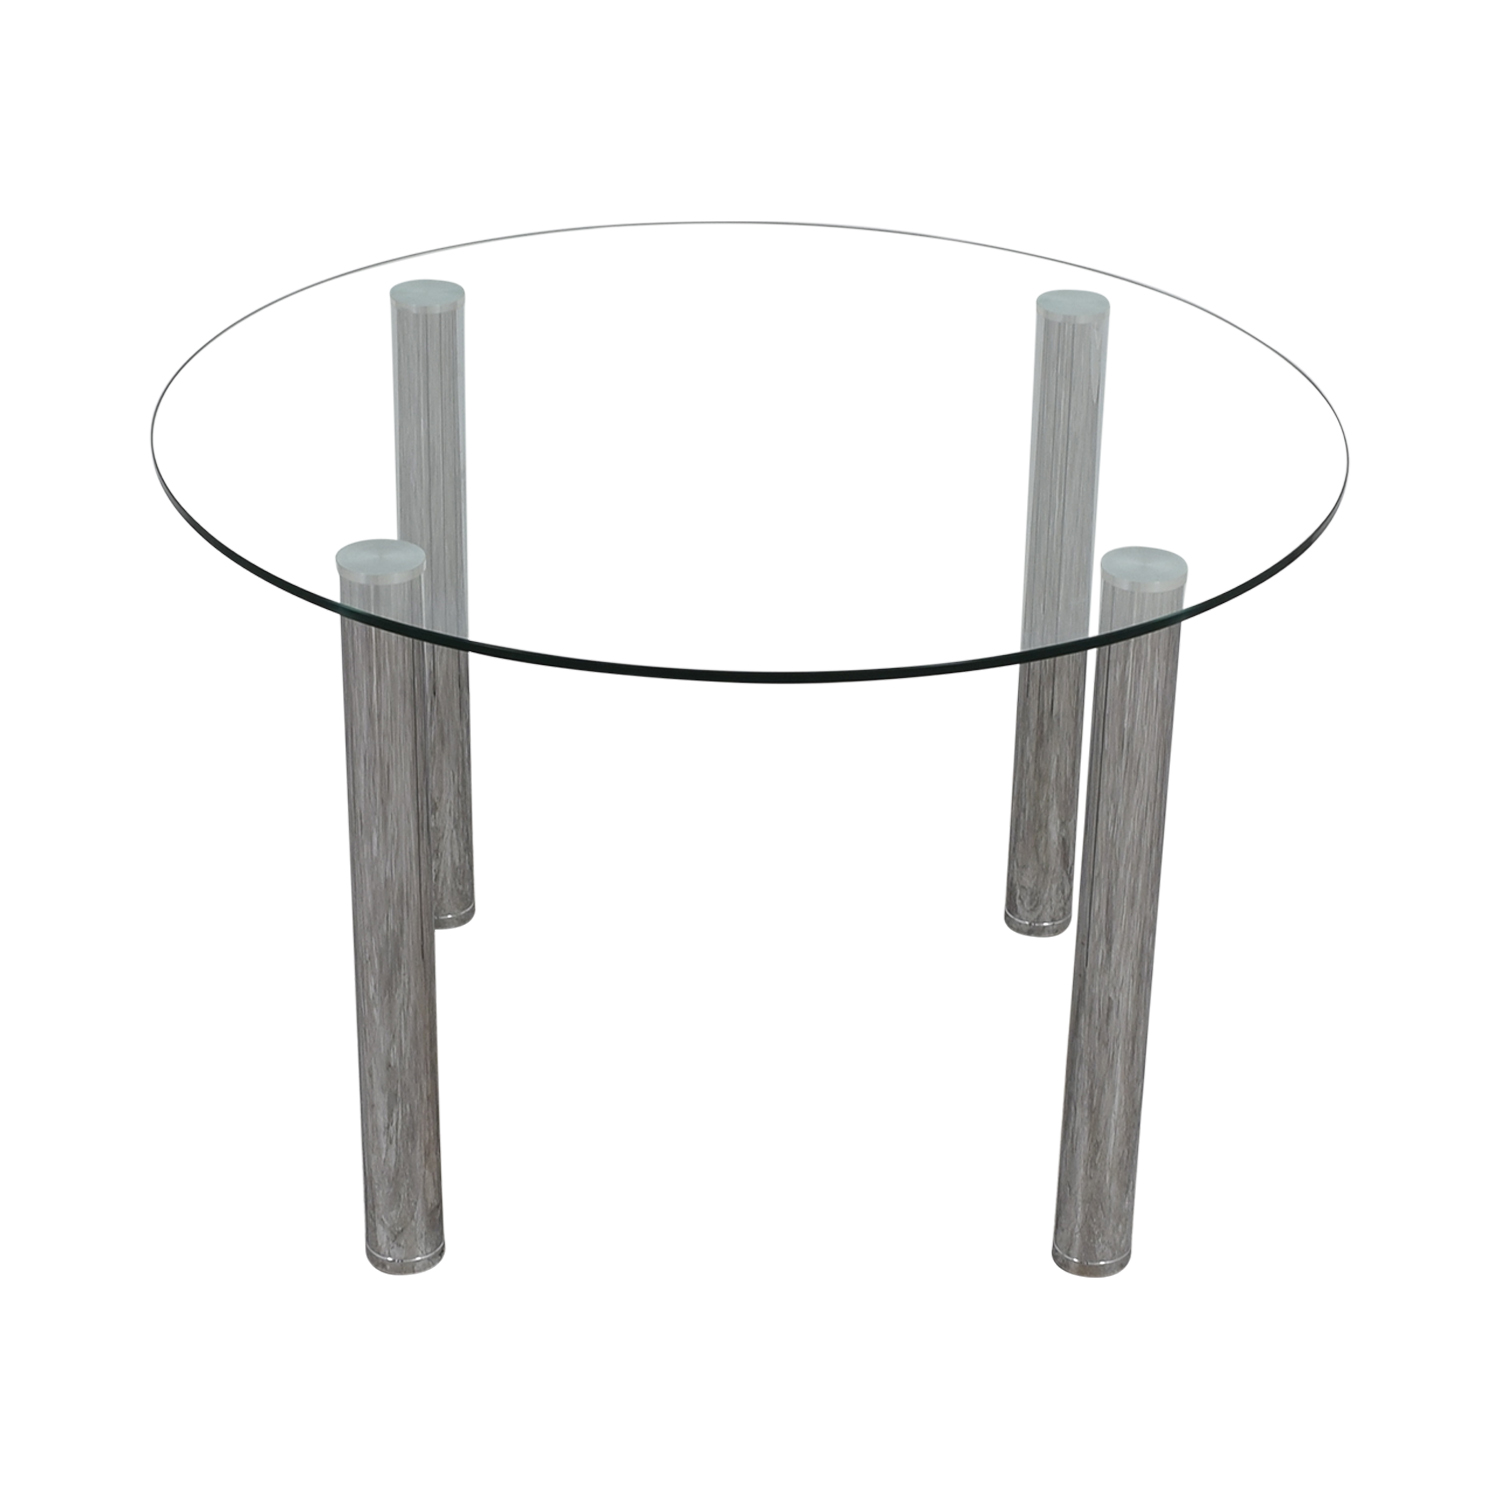 Round Glass and Chrome Table for sale